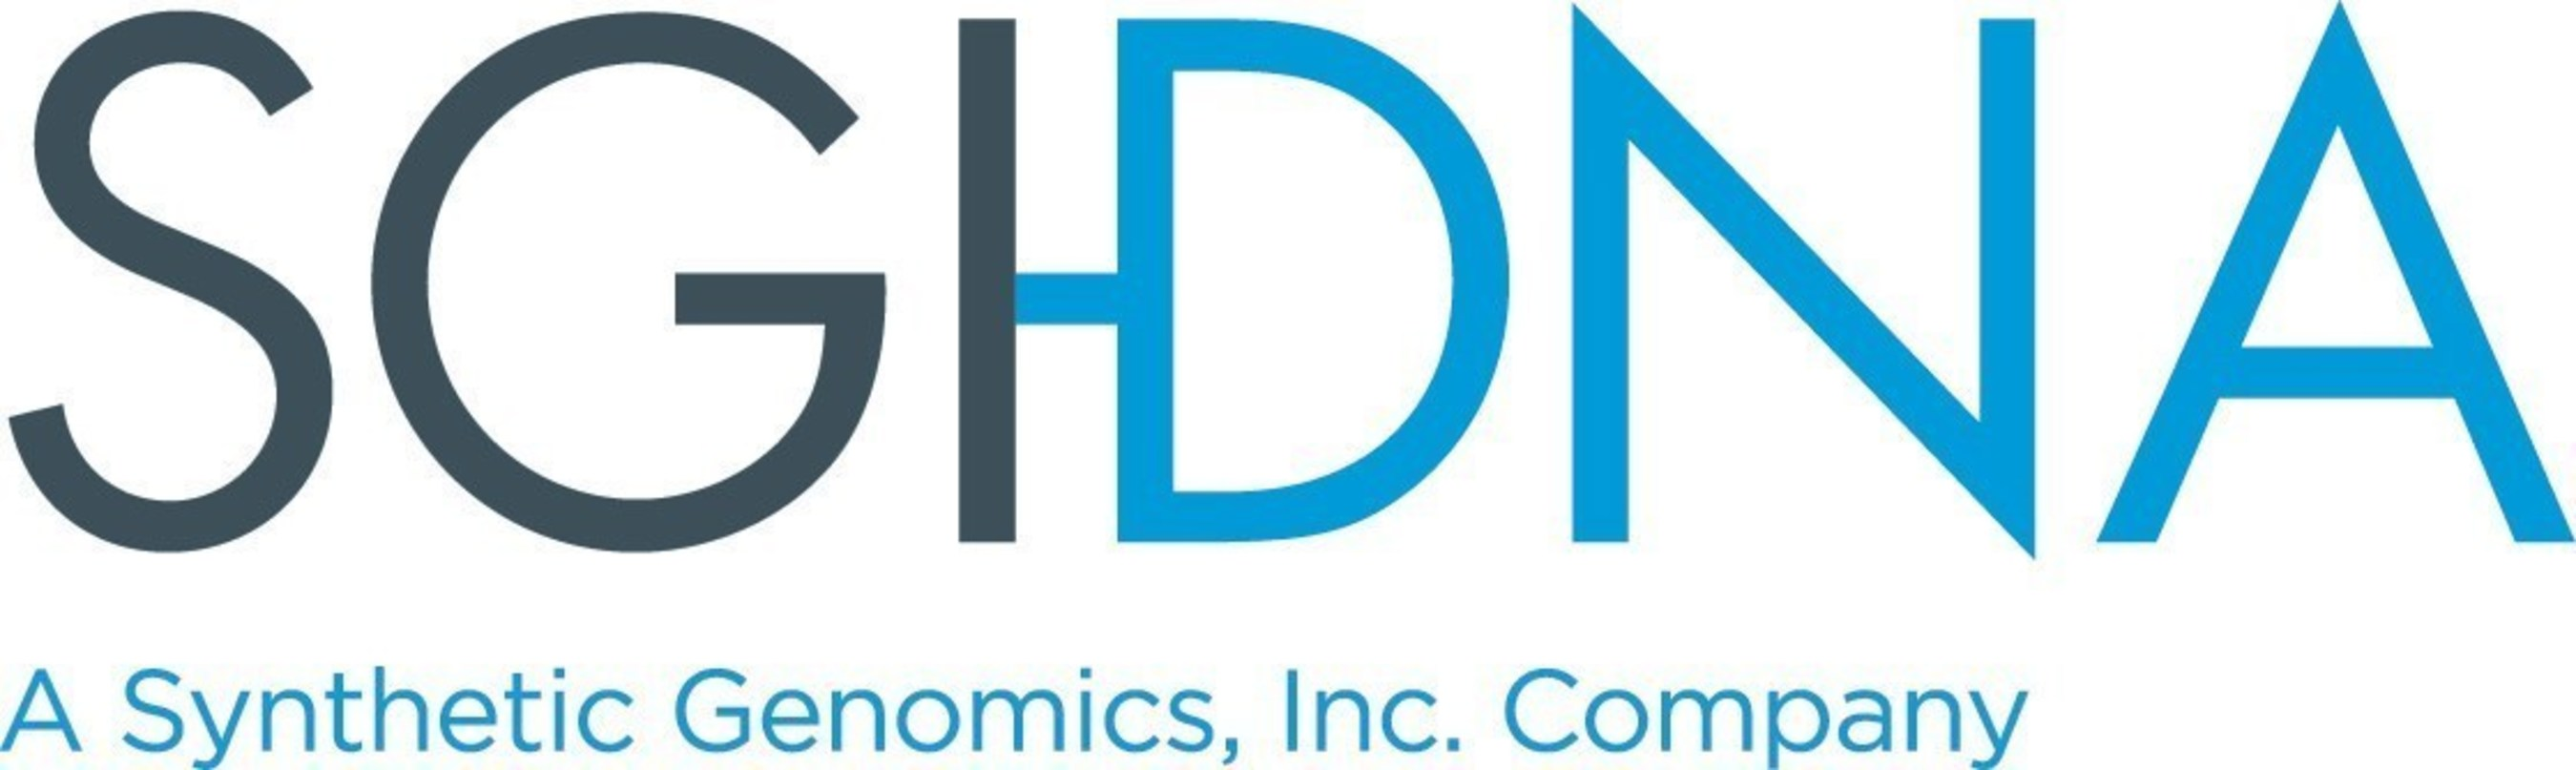 SGI-DNA, a Synthetic Genomics, Inc. company